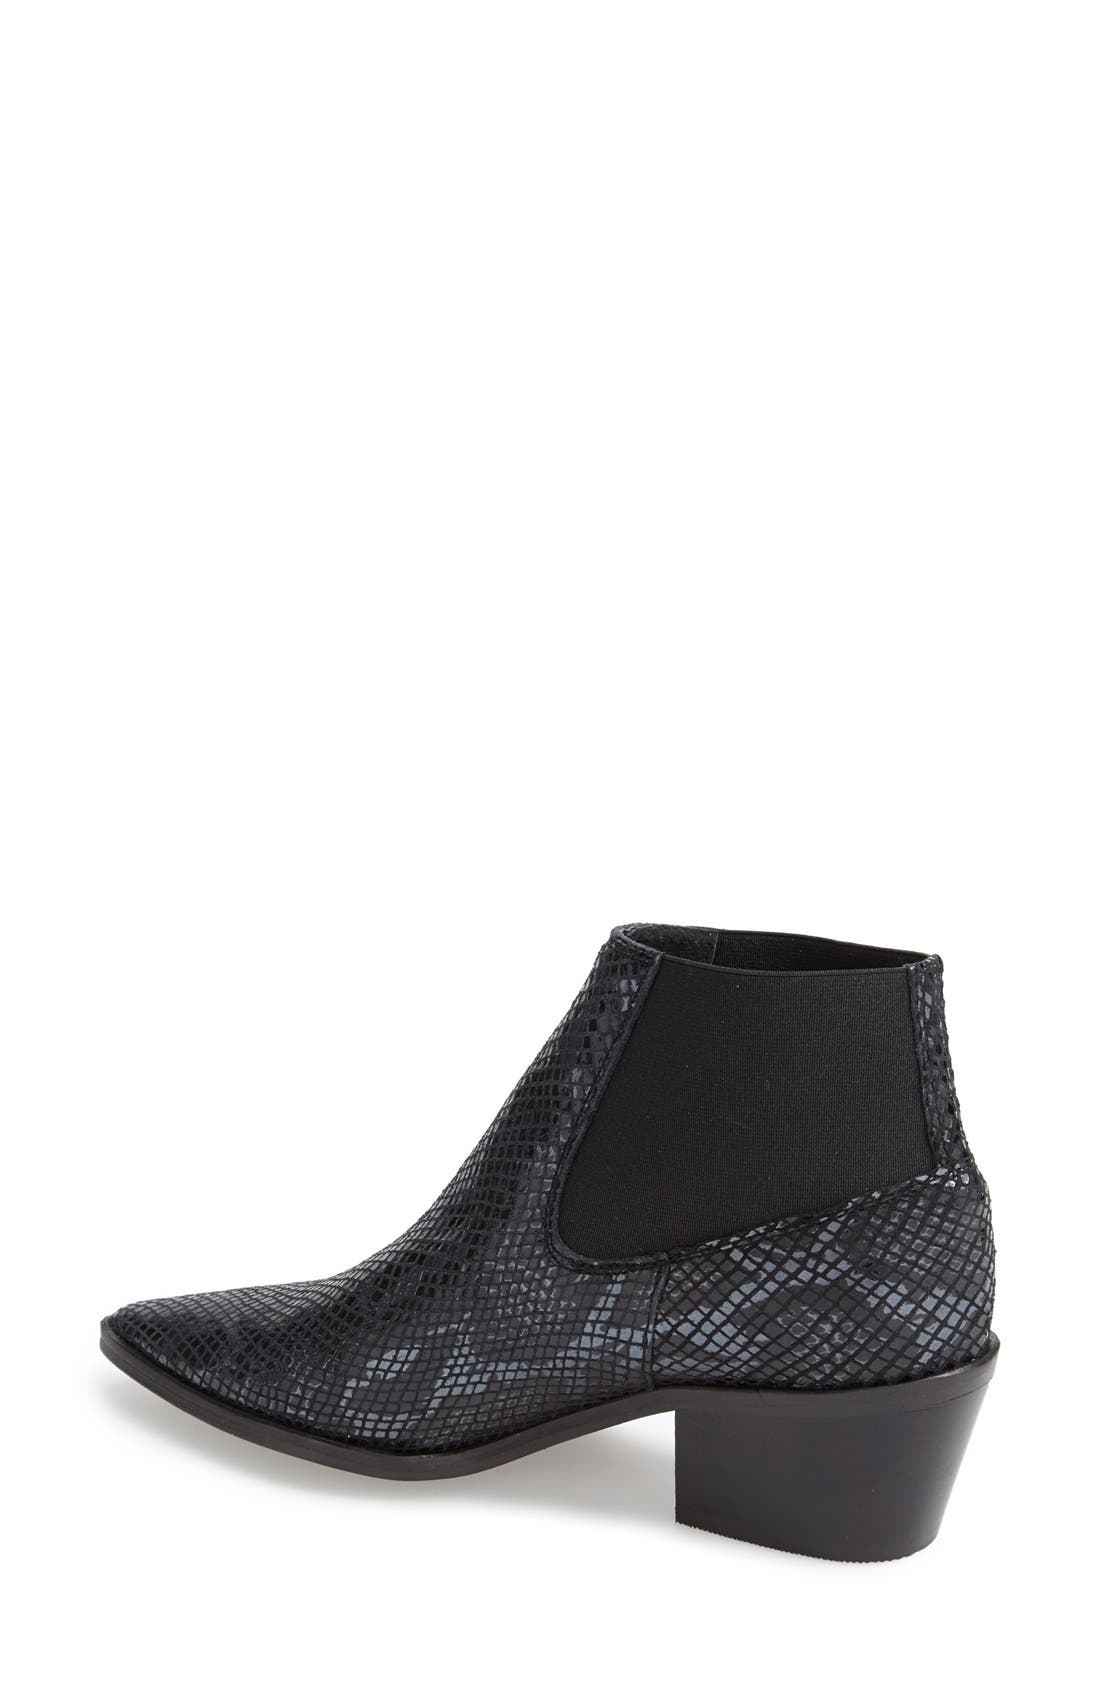 Alternate Image 2  - Topshop 'Marr' Pointy Toe Chelsea Boot (Women)